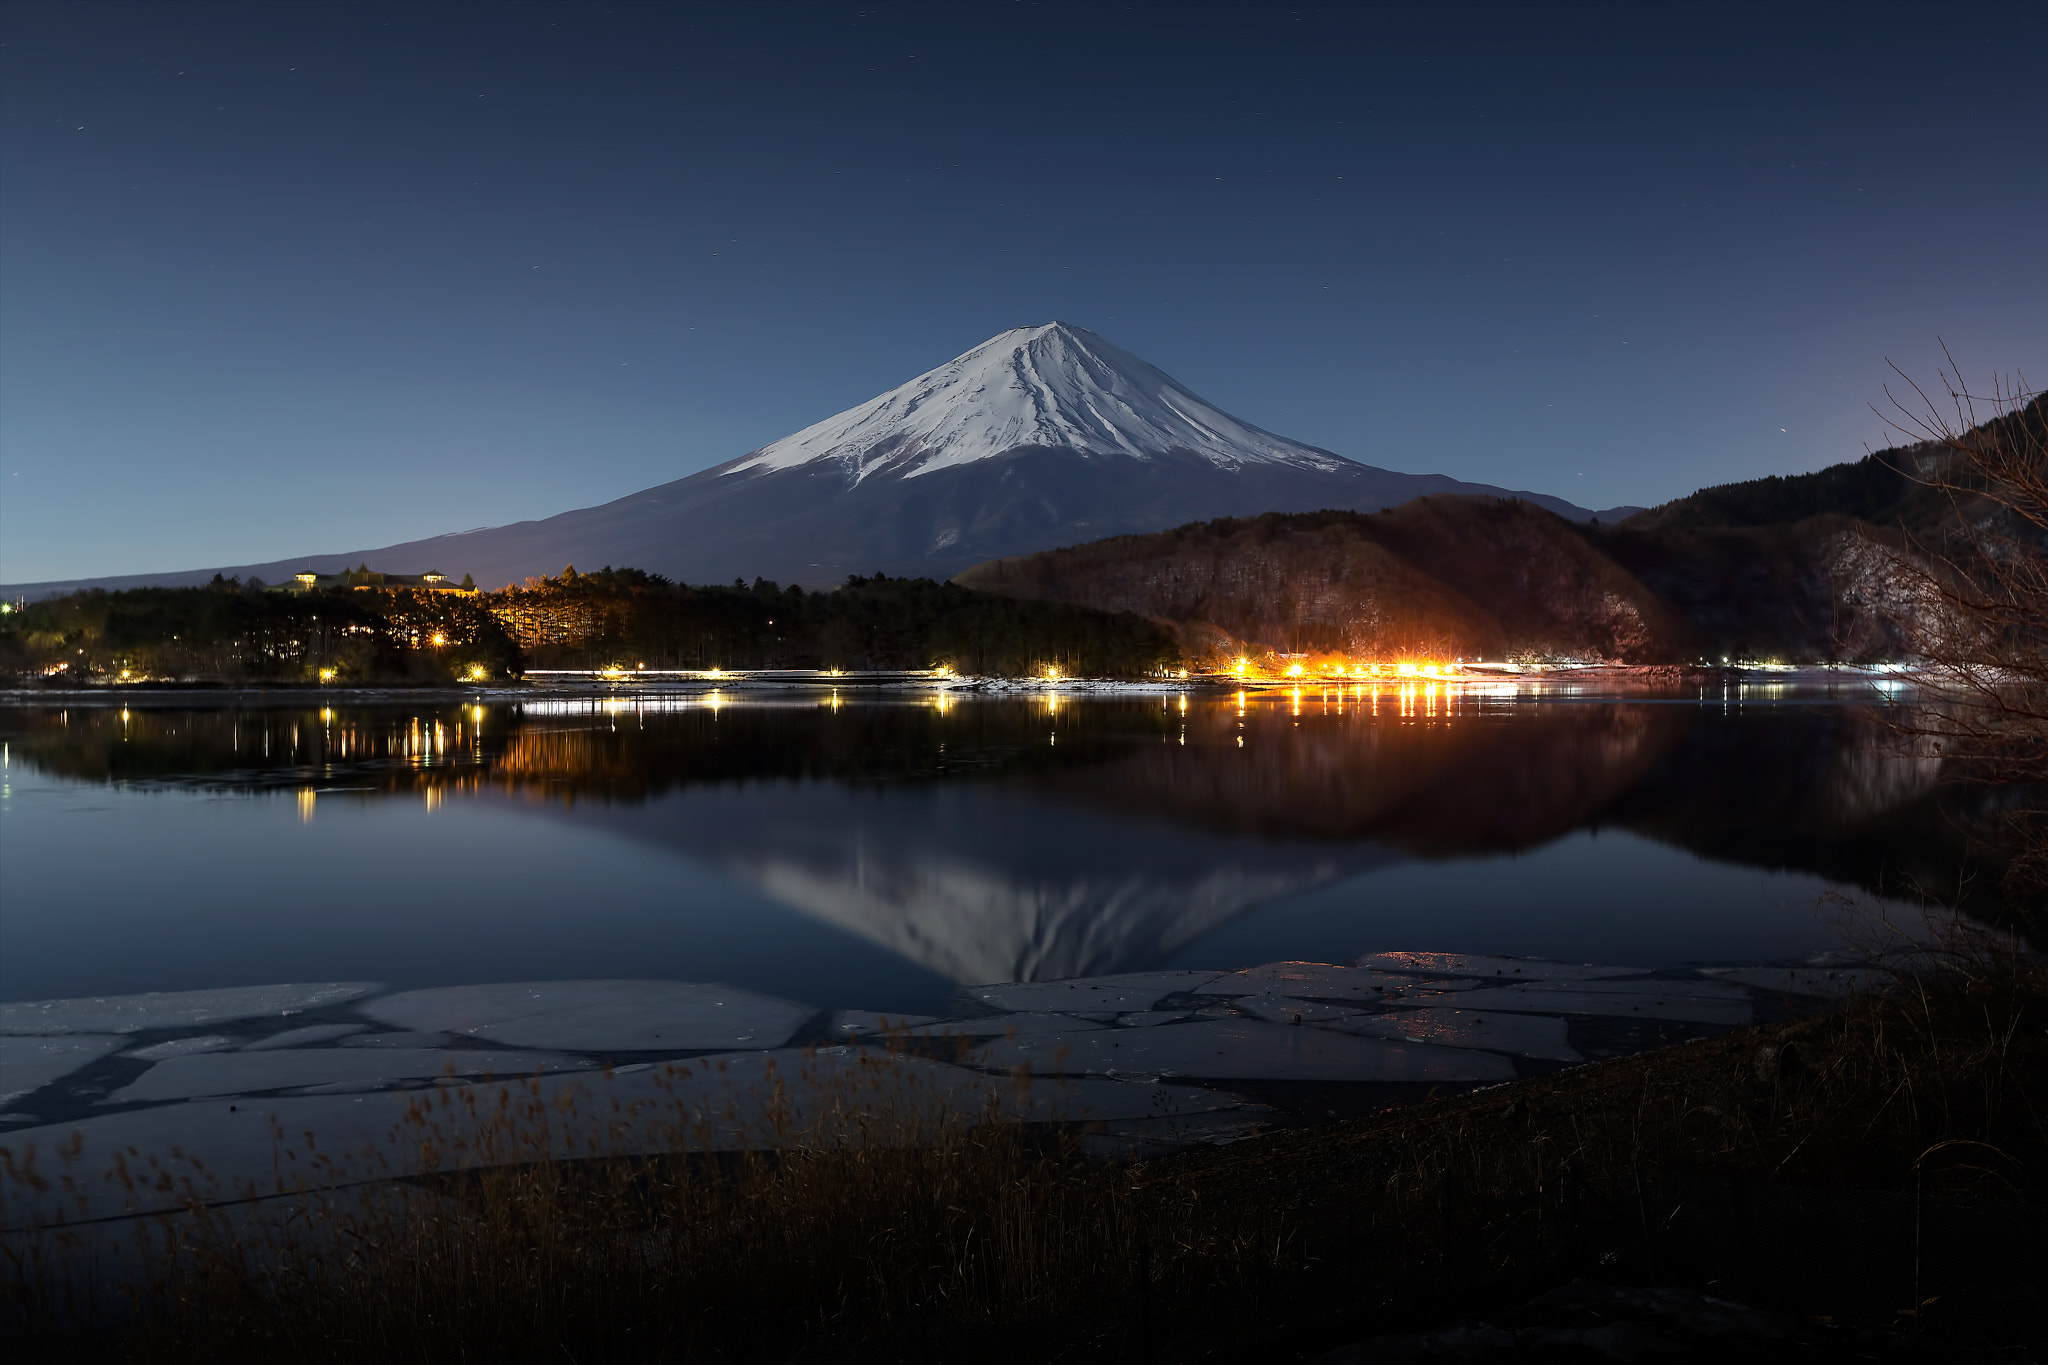 Photograph Lake under the fullmoon by MIYAMOTO Y on 500px